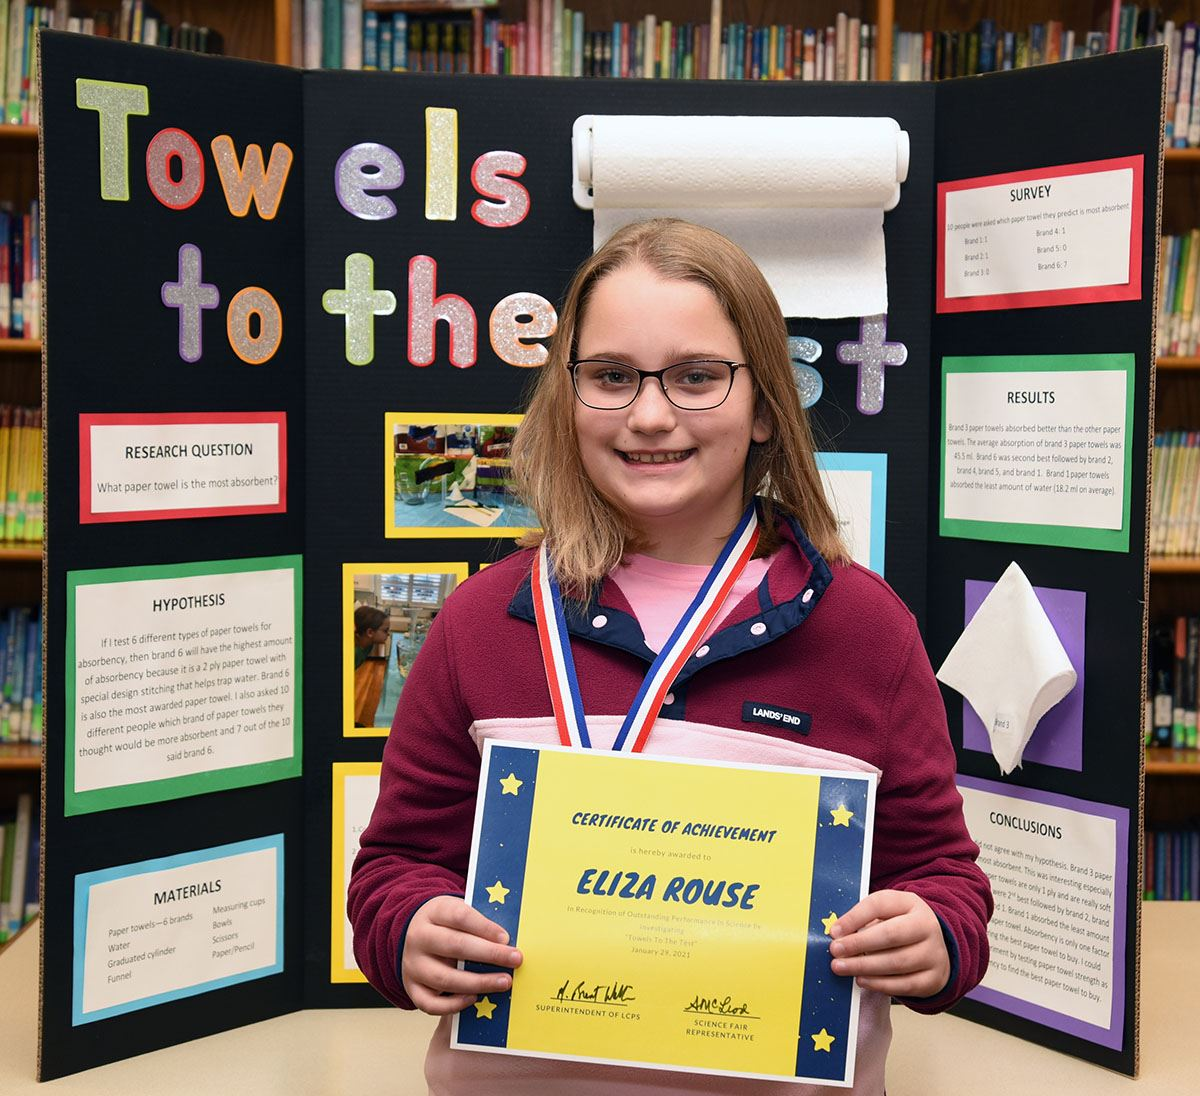 5th grade girls displays certificate as she stands before her Science Fair project.